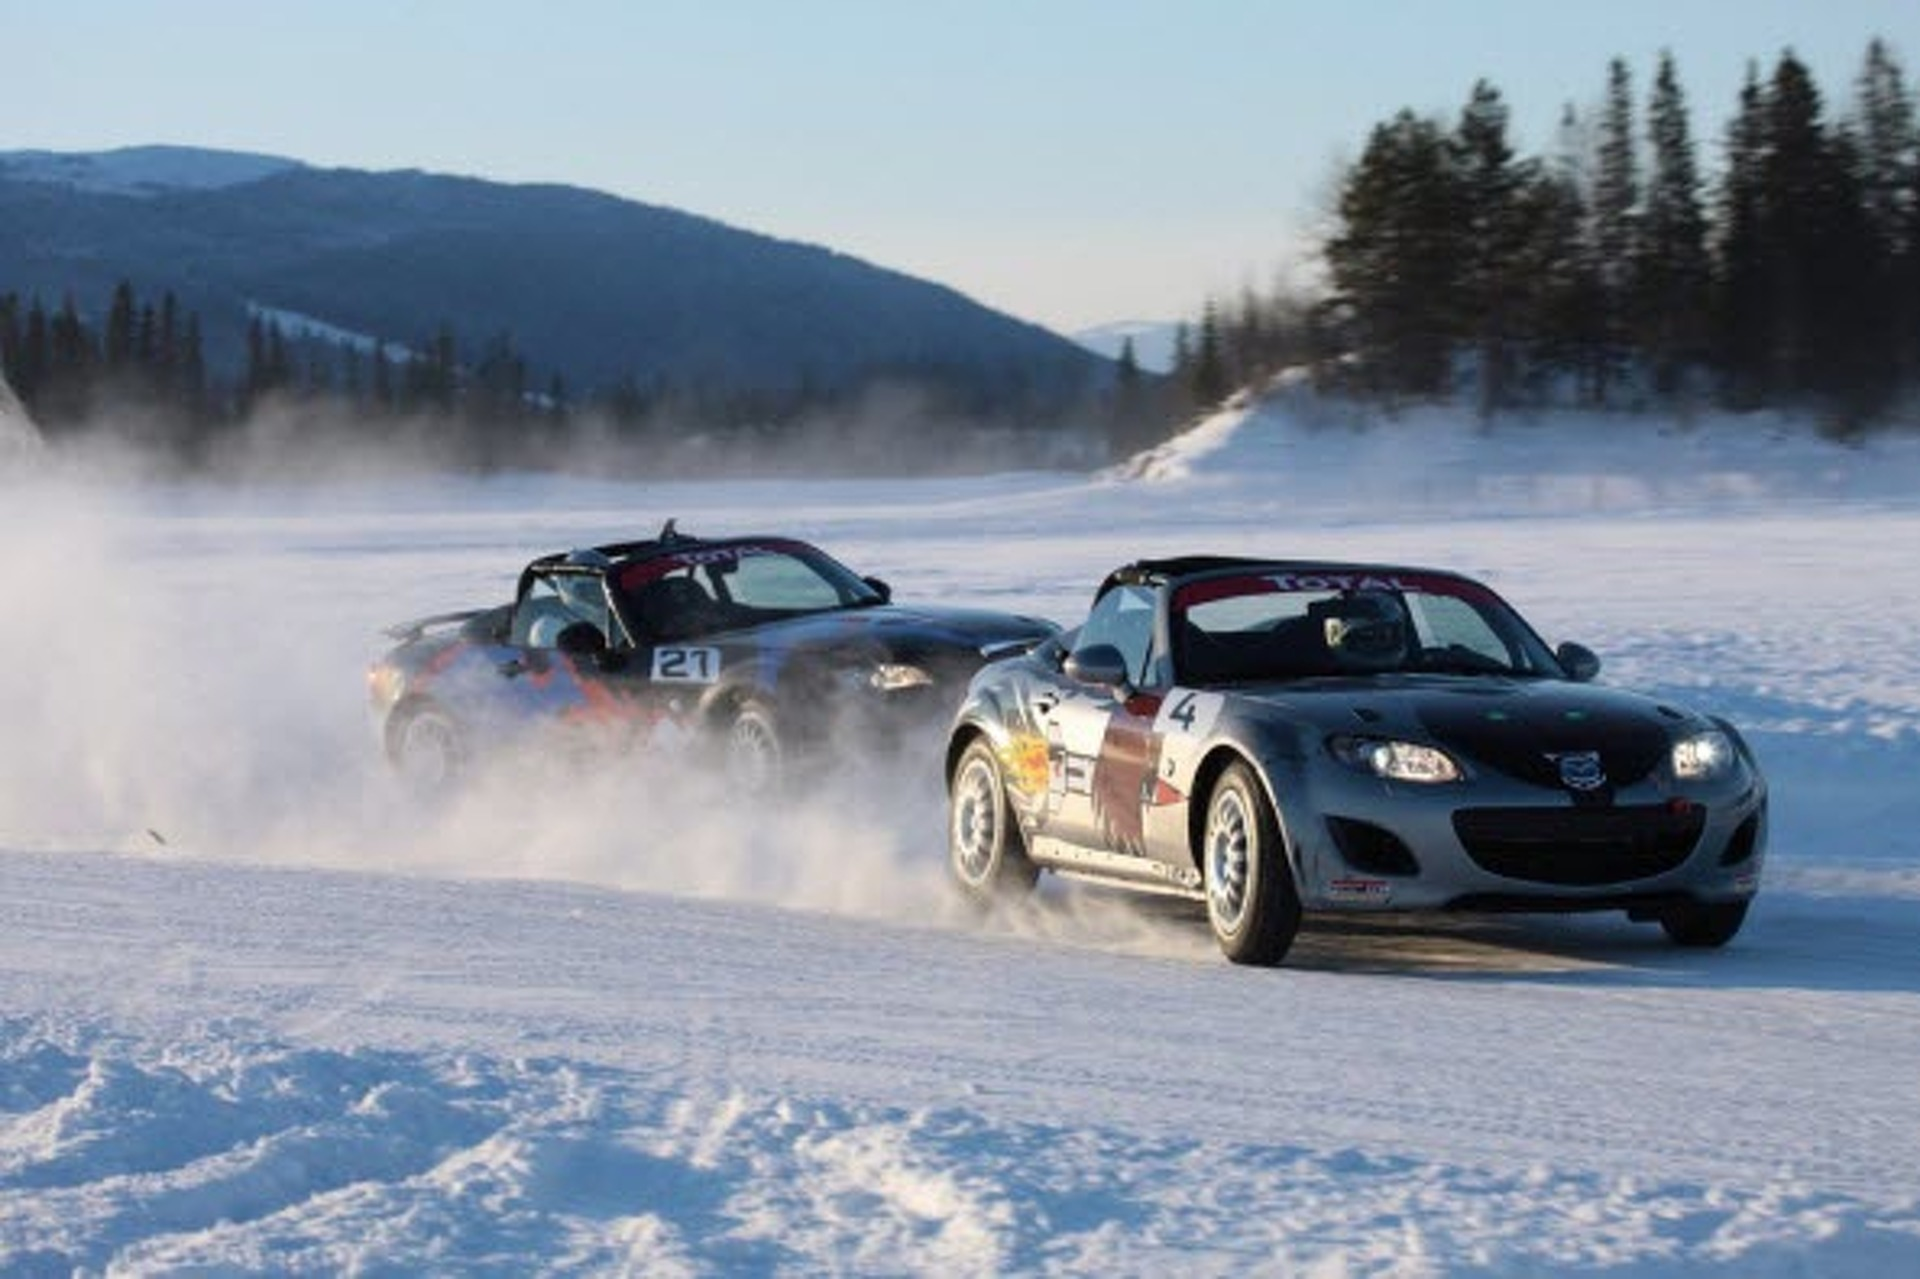 Five Underrated Winter Cars